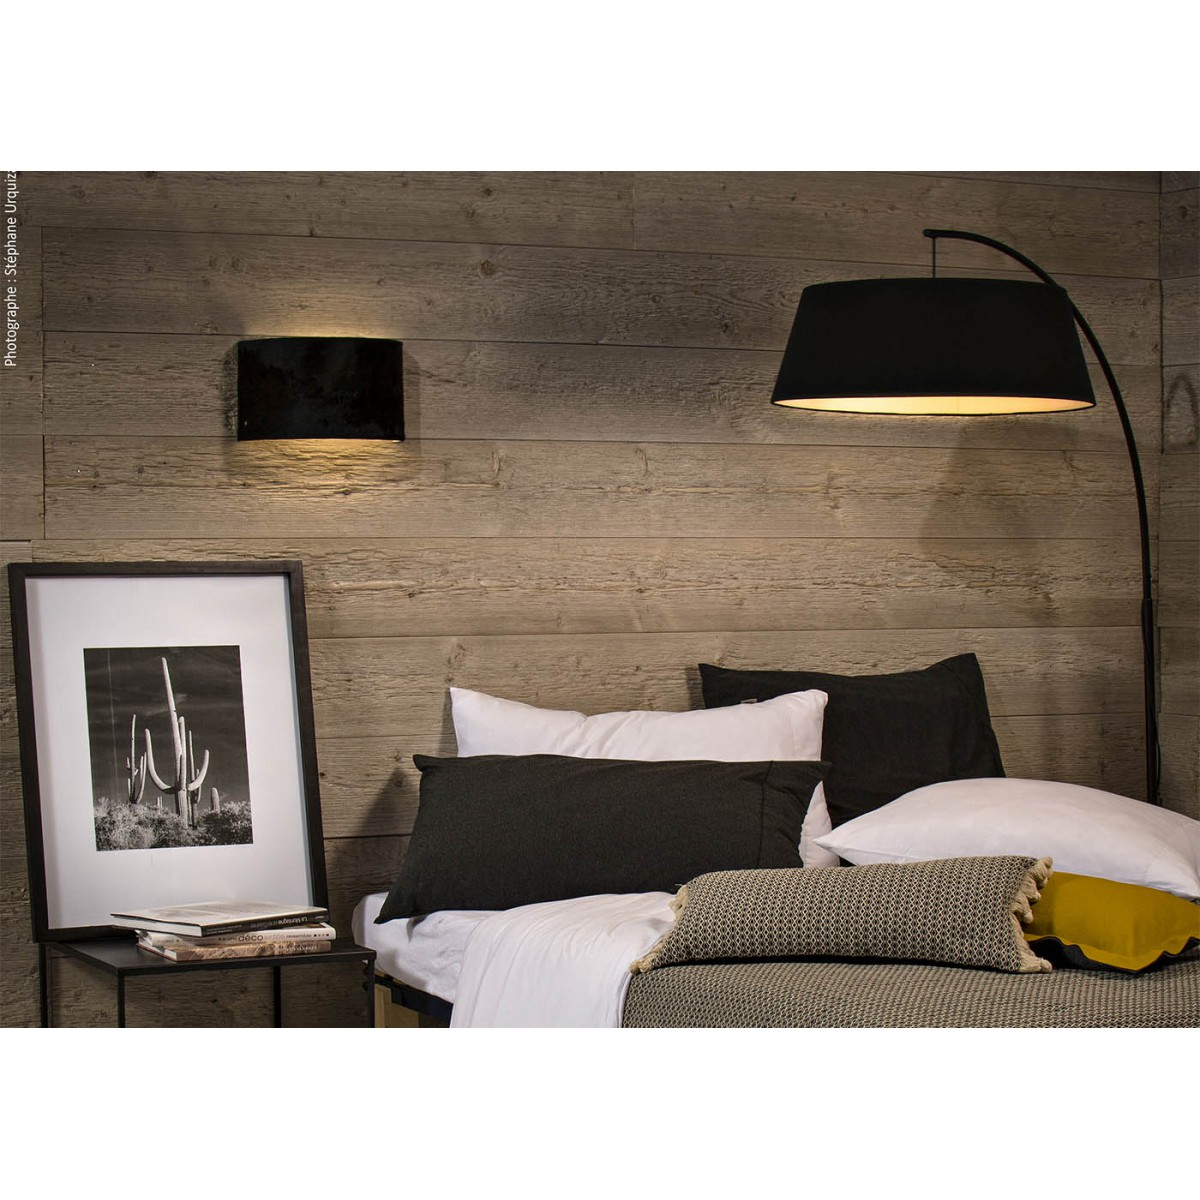 lampadaire arc et abat jour lin noir chez ksl living. Black Bedroom Furniture Sets. Home Design Ideas